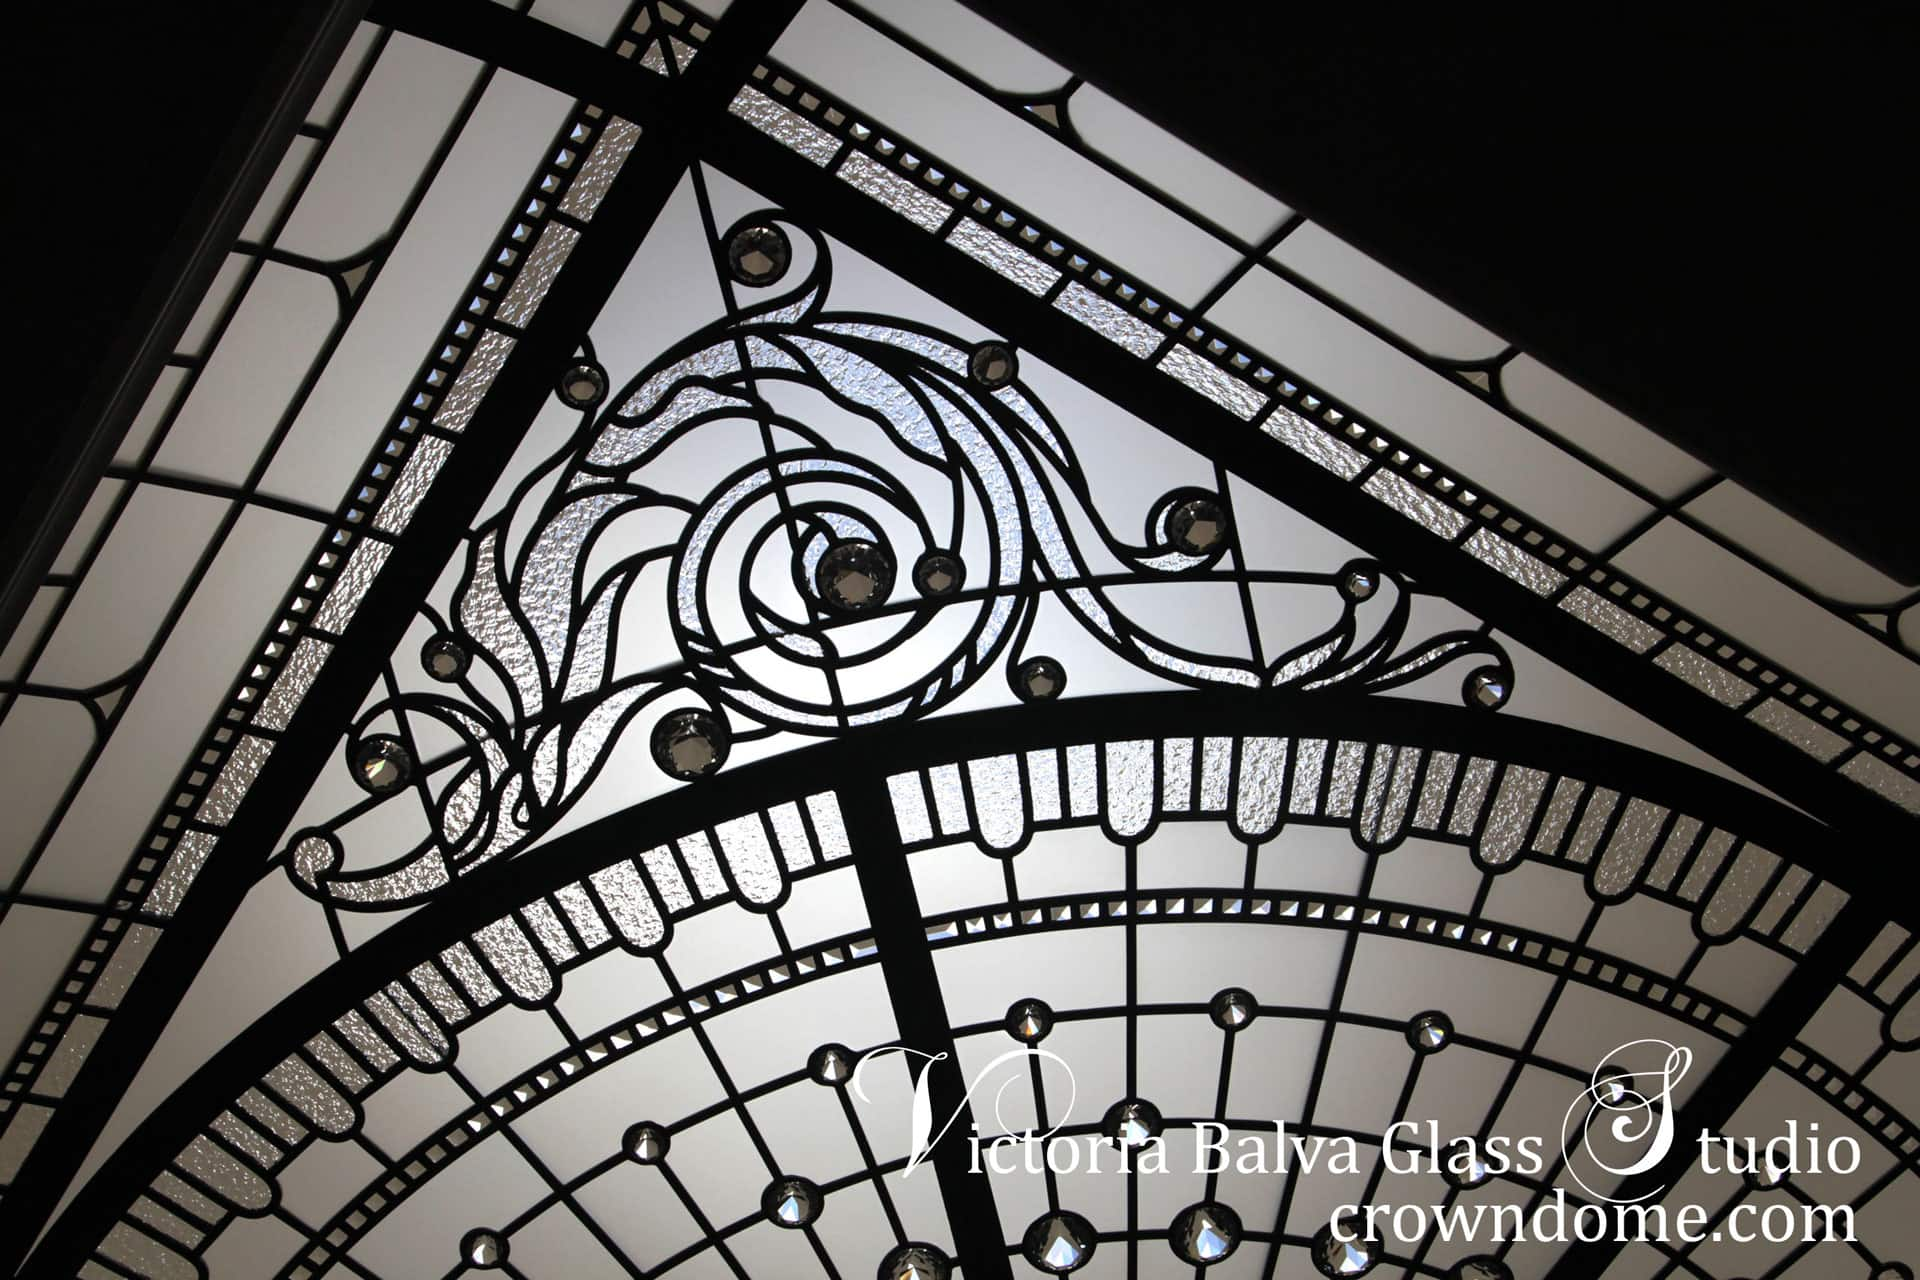 Leaded glass ceiling skylight detail with acanthus leaf ornamental borders, crystal jewel diamonds and beveled glass. Traditional ornament inspired historical leaded glass ceiling skylight